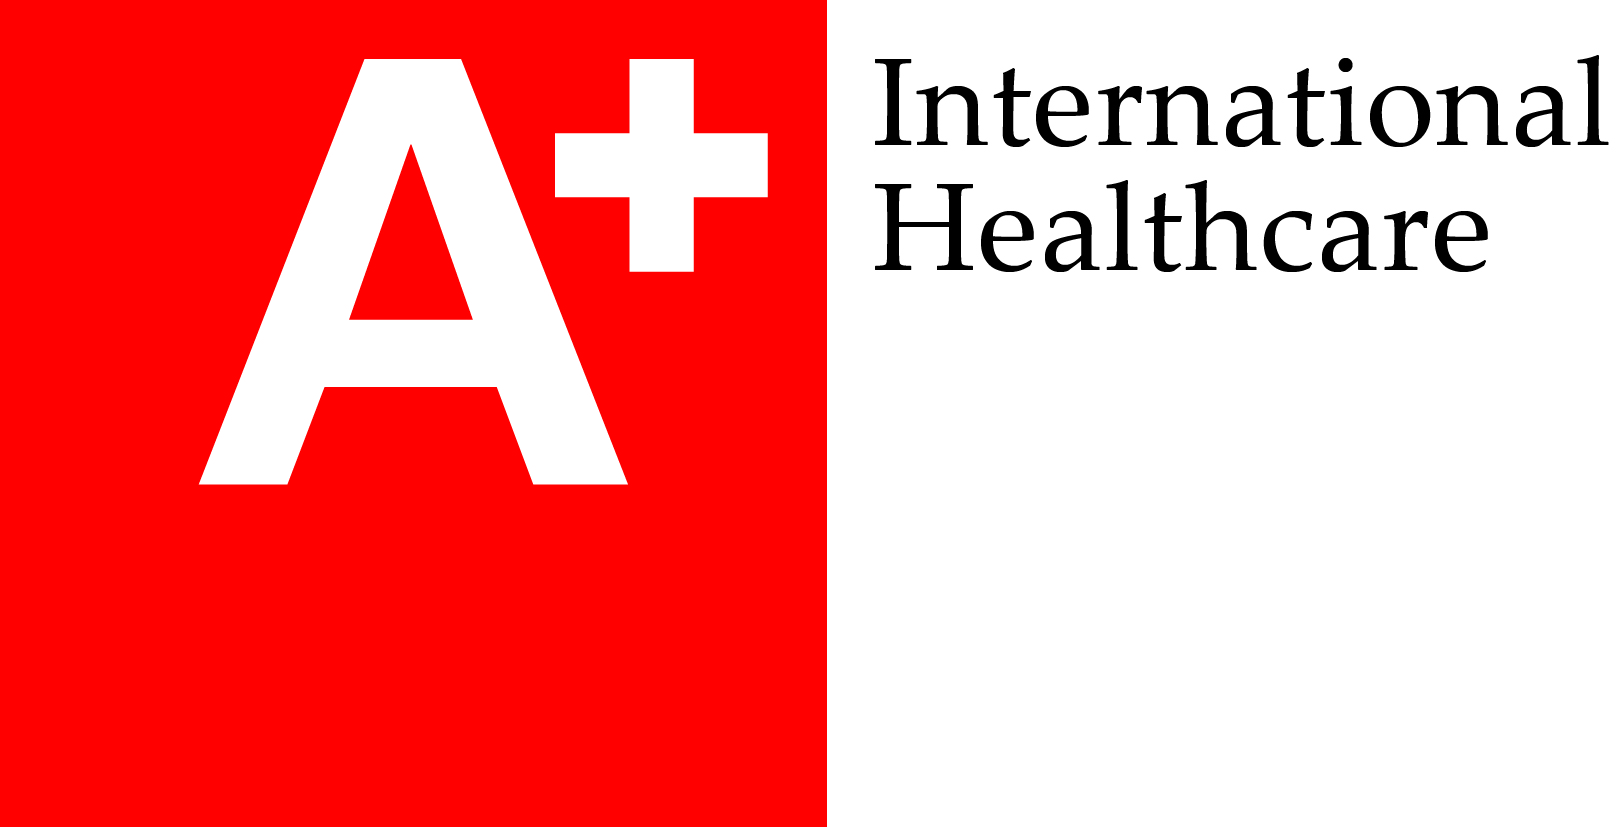 International Healthcare